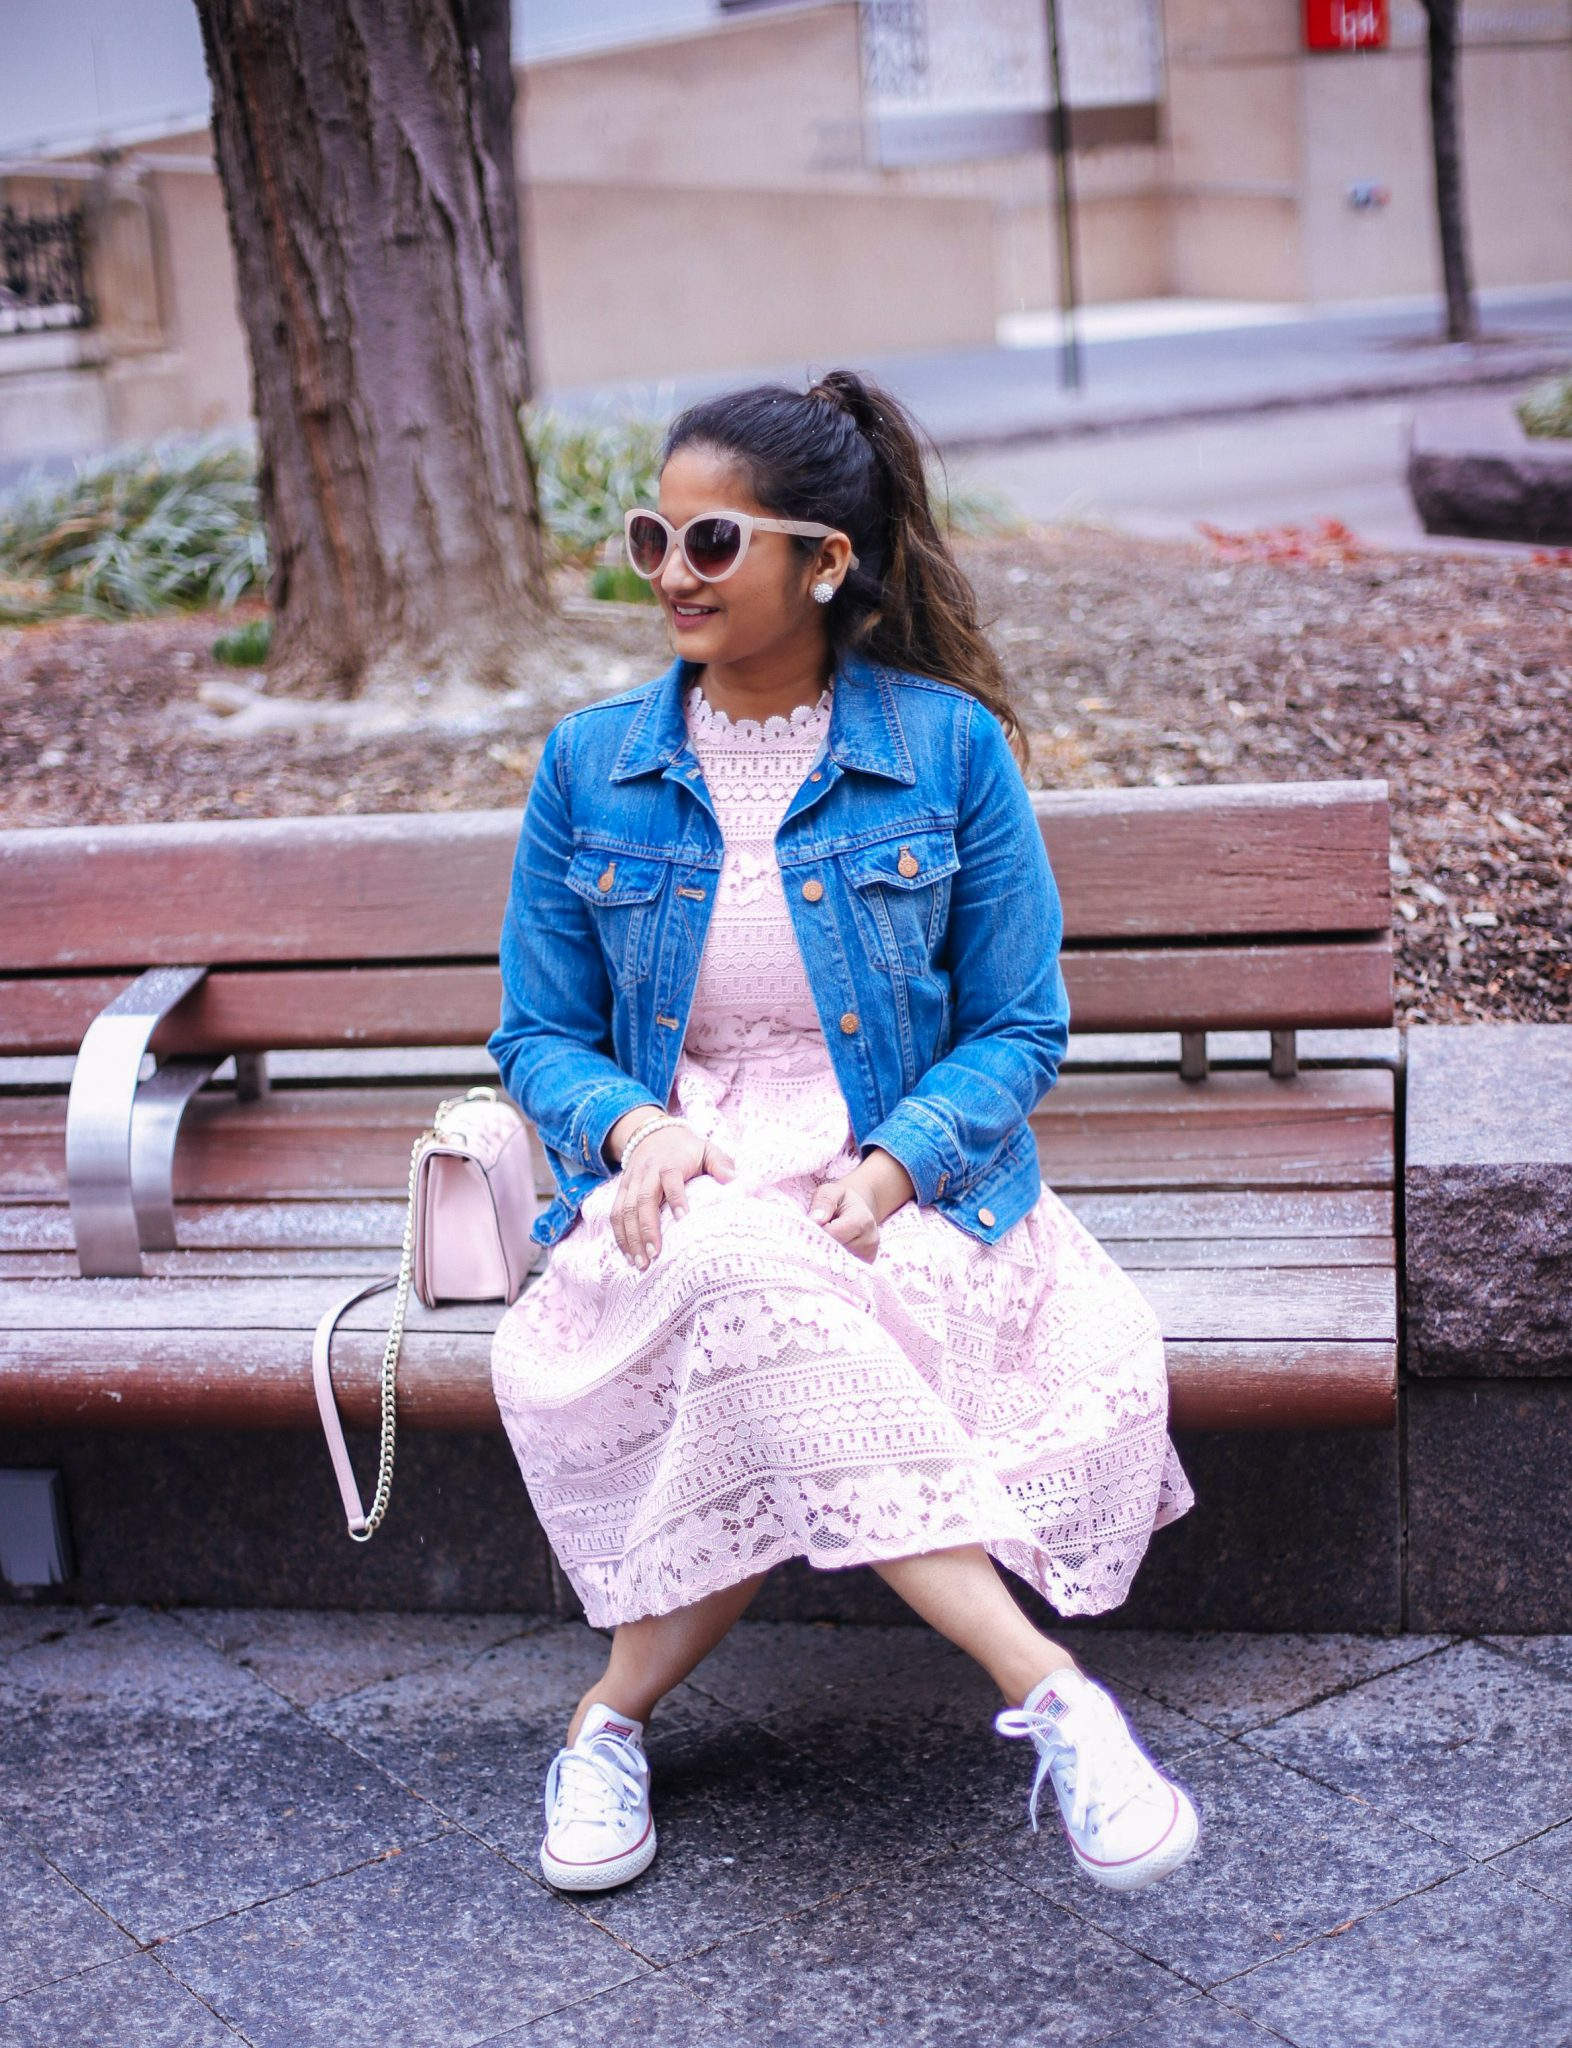 lifestyle blog dreaming loud wearing Converse chuck Taylor sneakers with lace dress